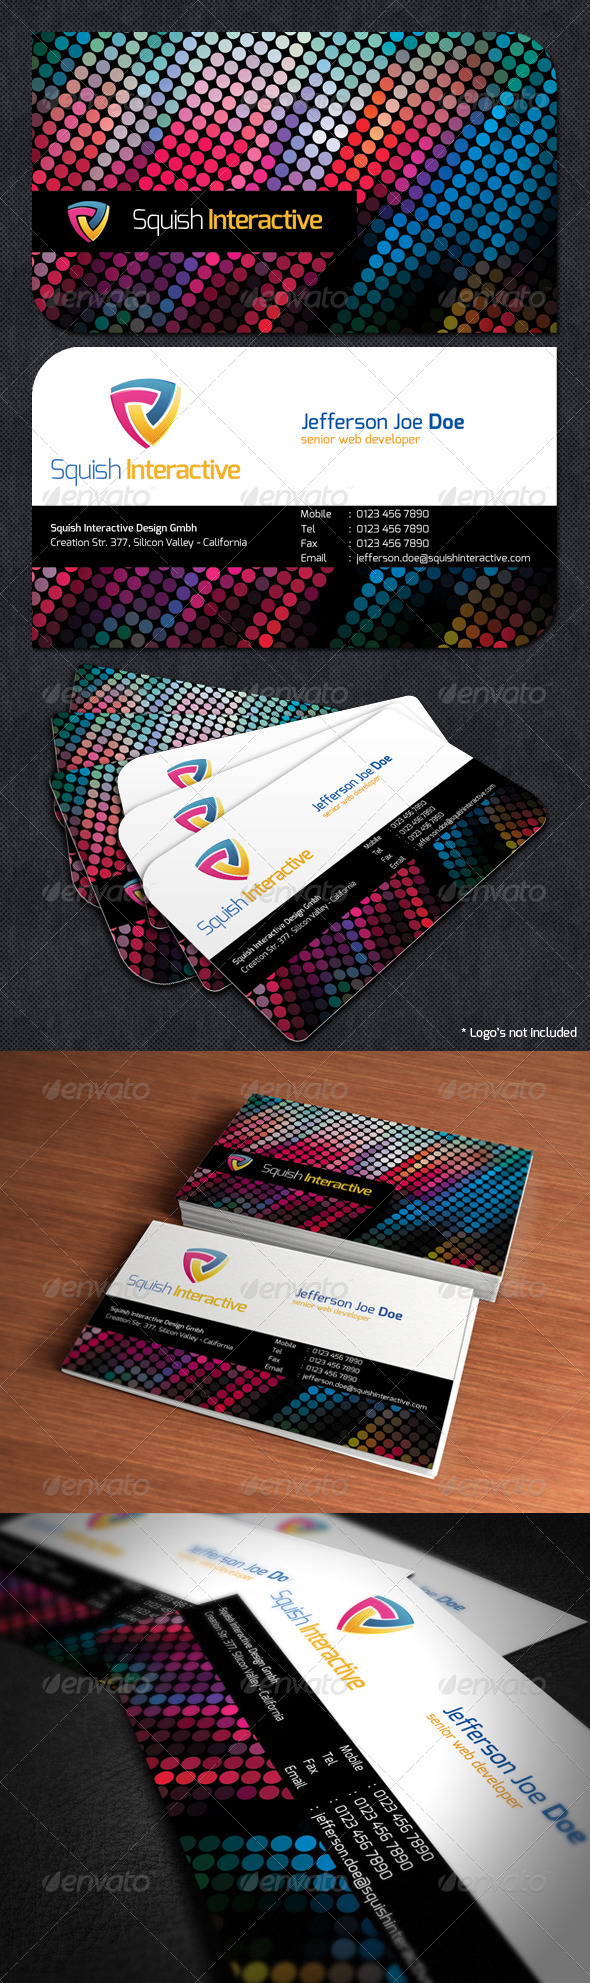 GraphicRiver Colorful Business Card 2081616